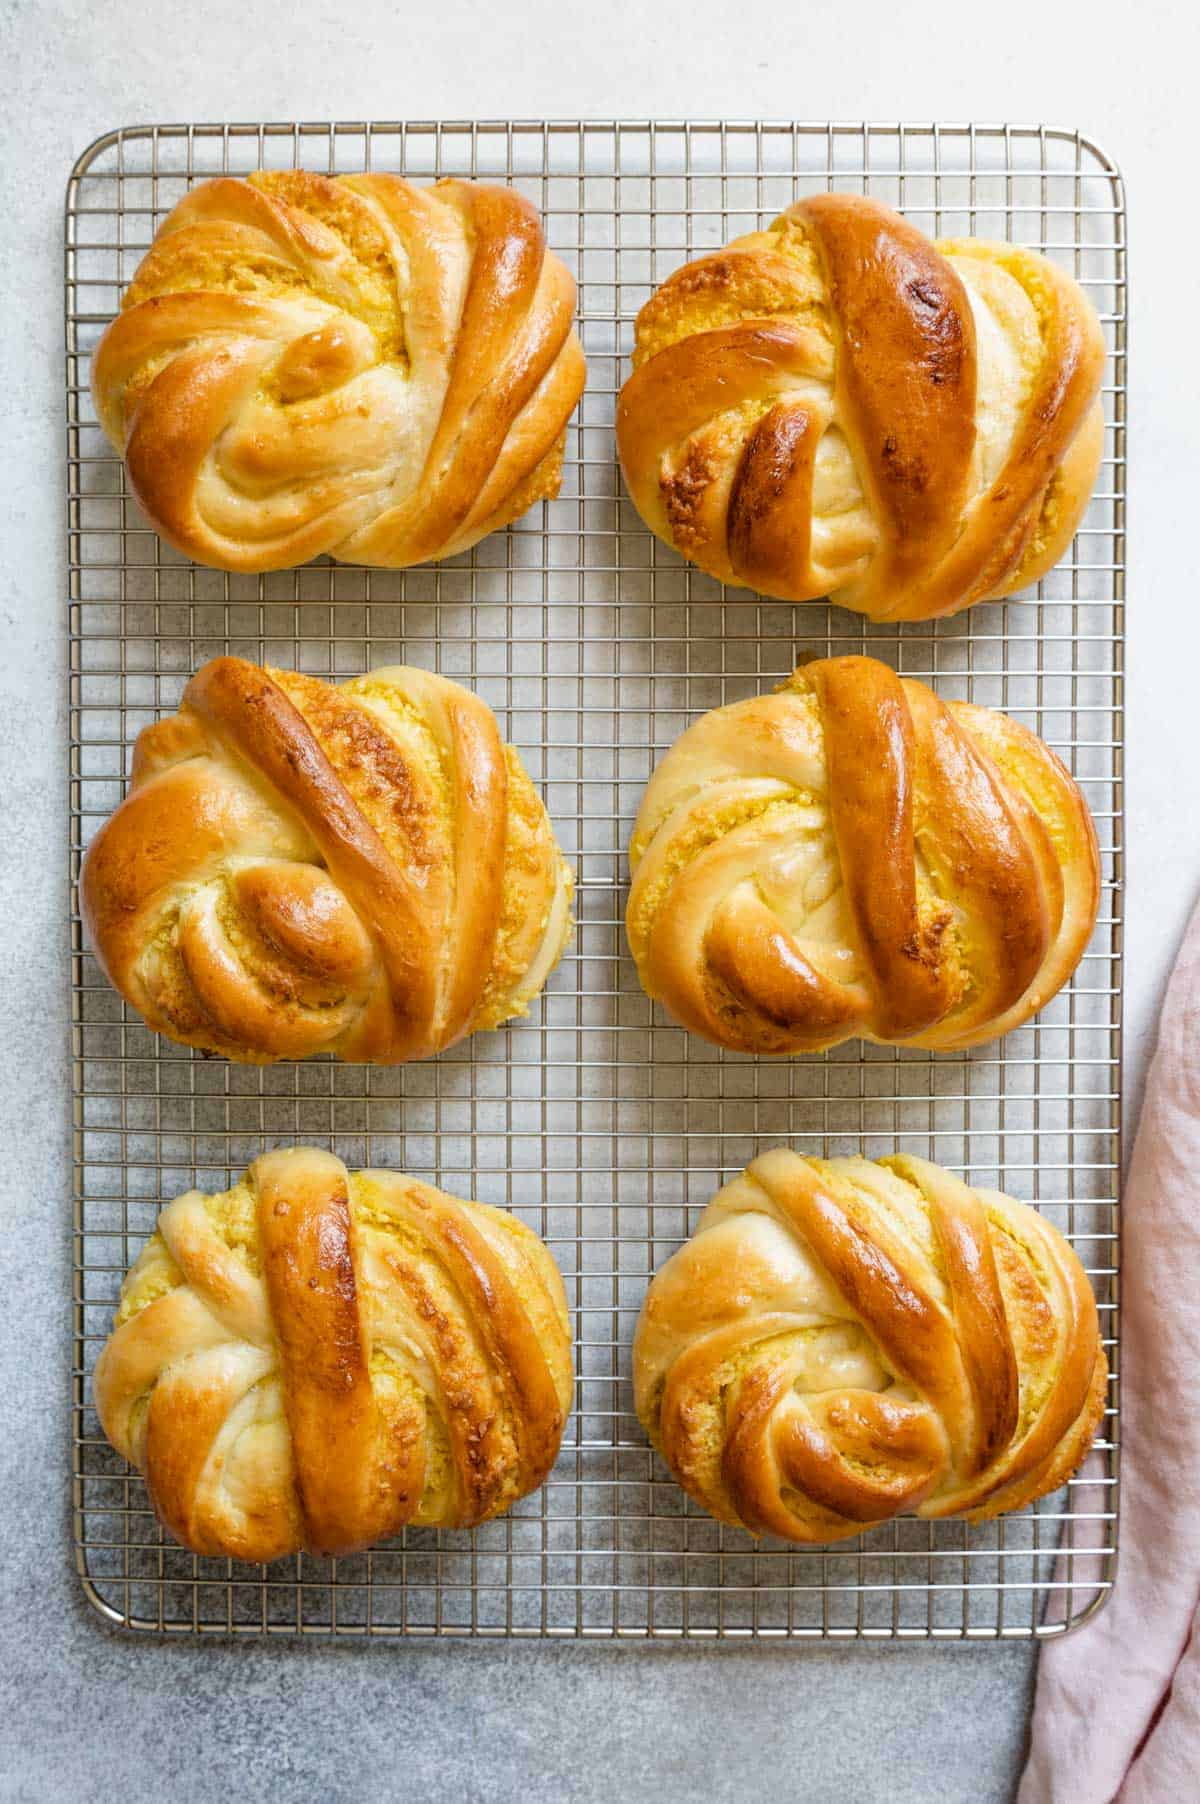 Coconut buns on cooling rack